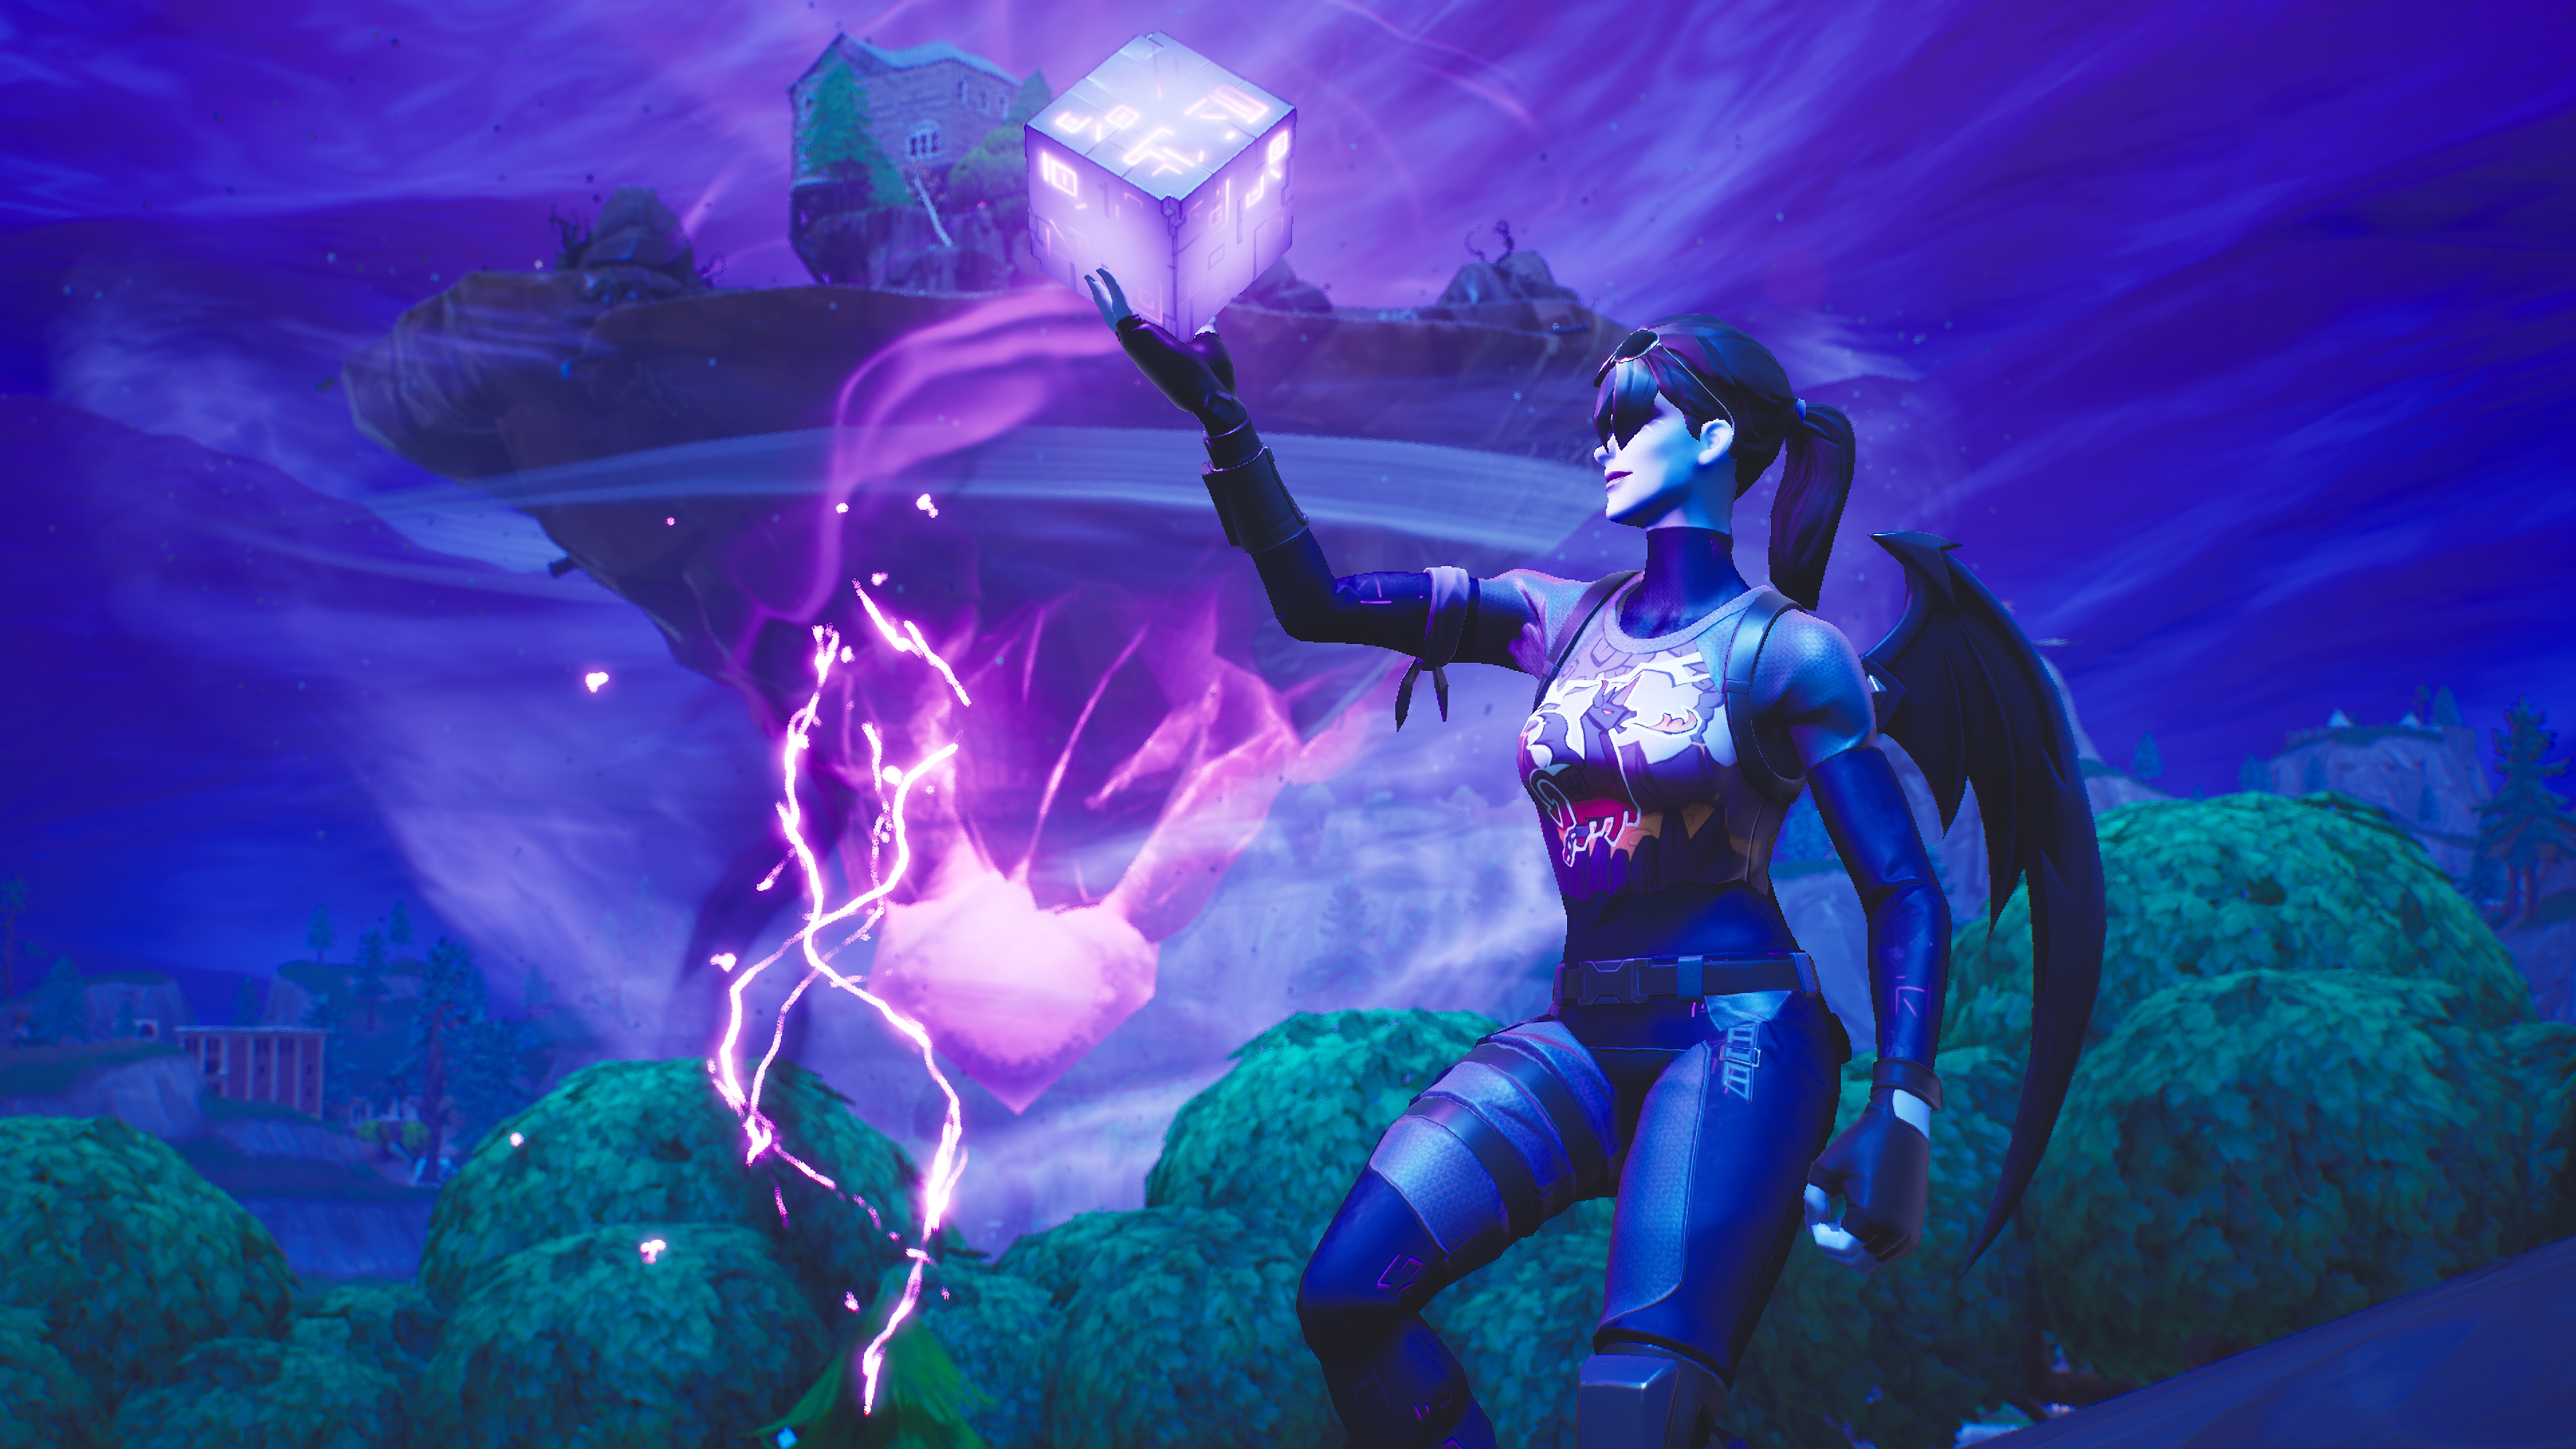 Fortnite's Popularity On Twitch Has Drastically Declined